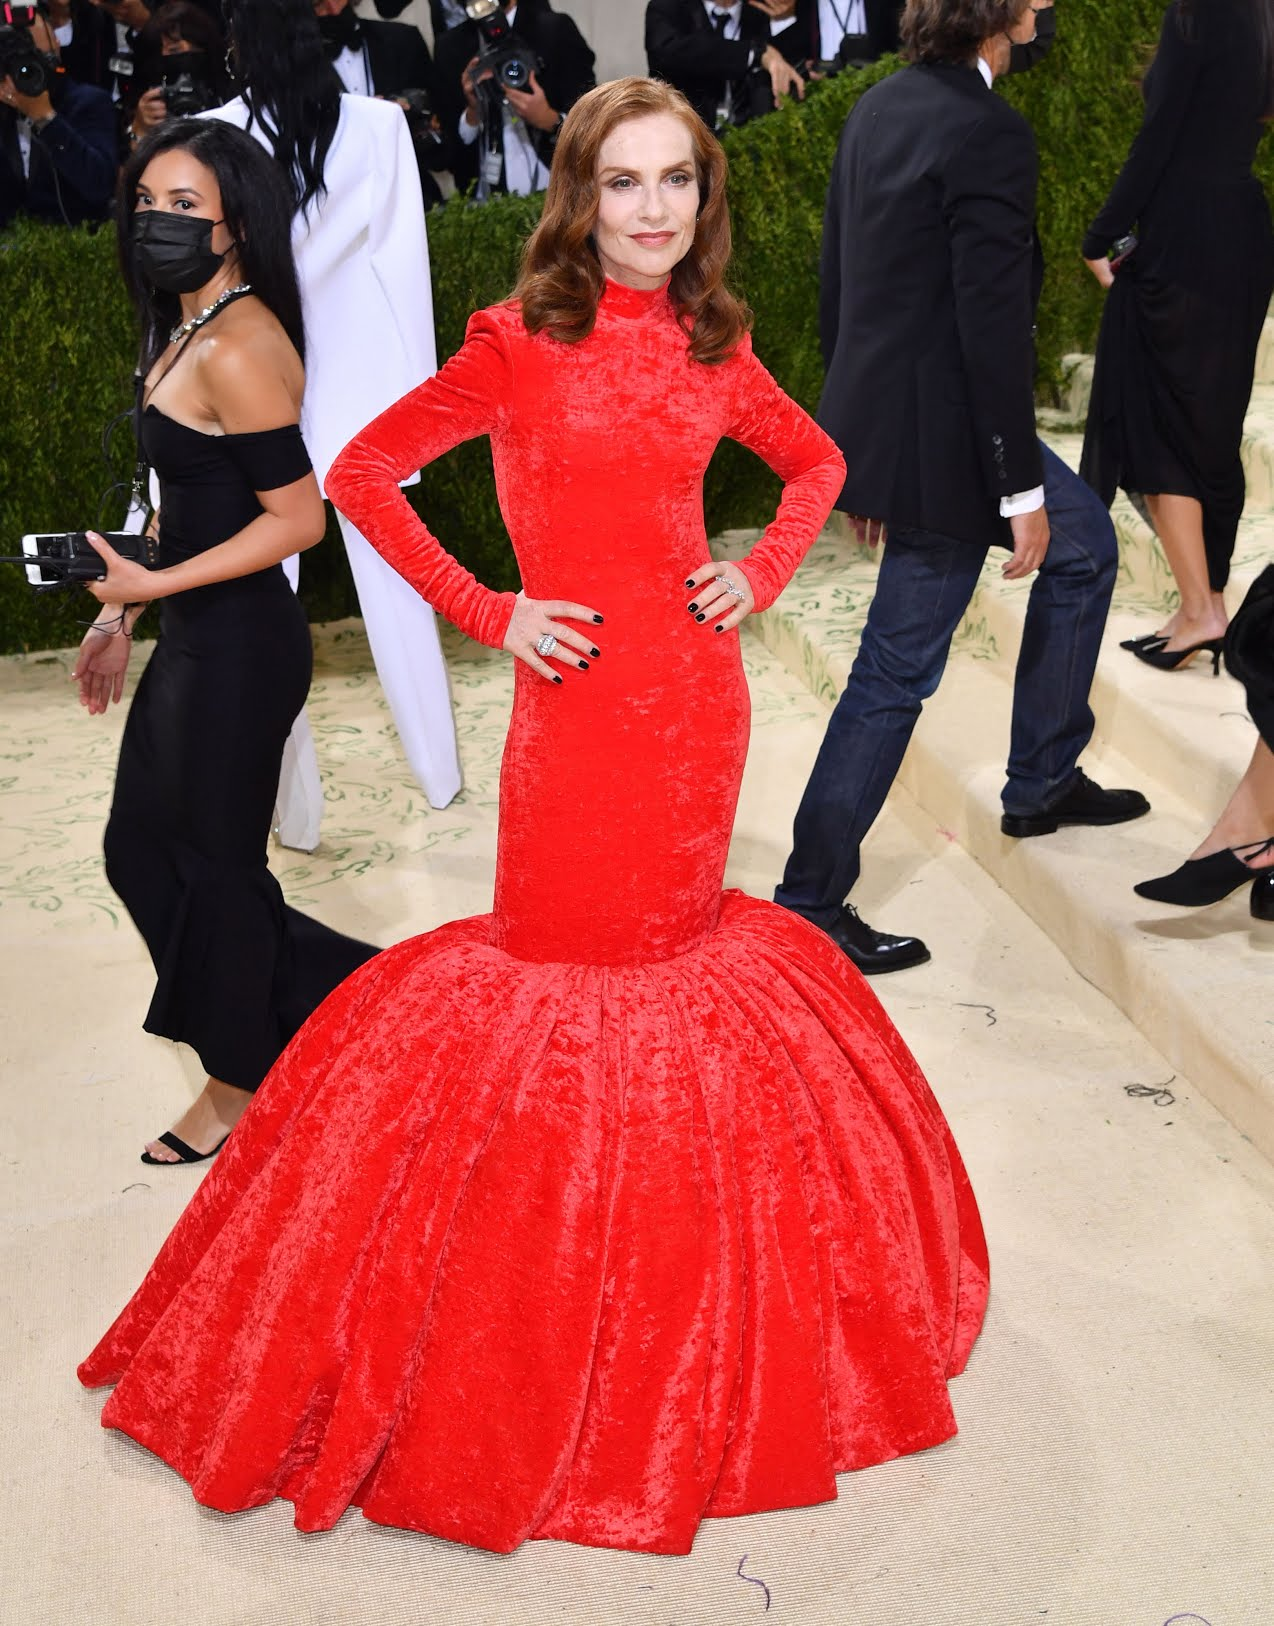 Image may contain: Clothing, Shoe, Footwear, Apparel, Isabelle Huppert, Human, Person, Evening Dress, Fashion, Gown, and Robe